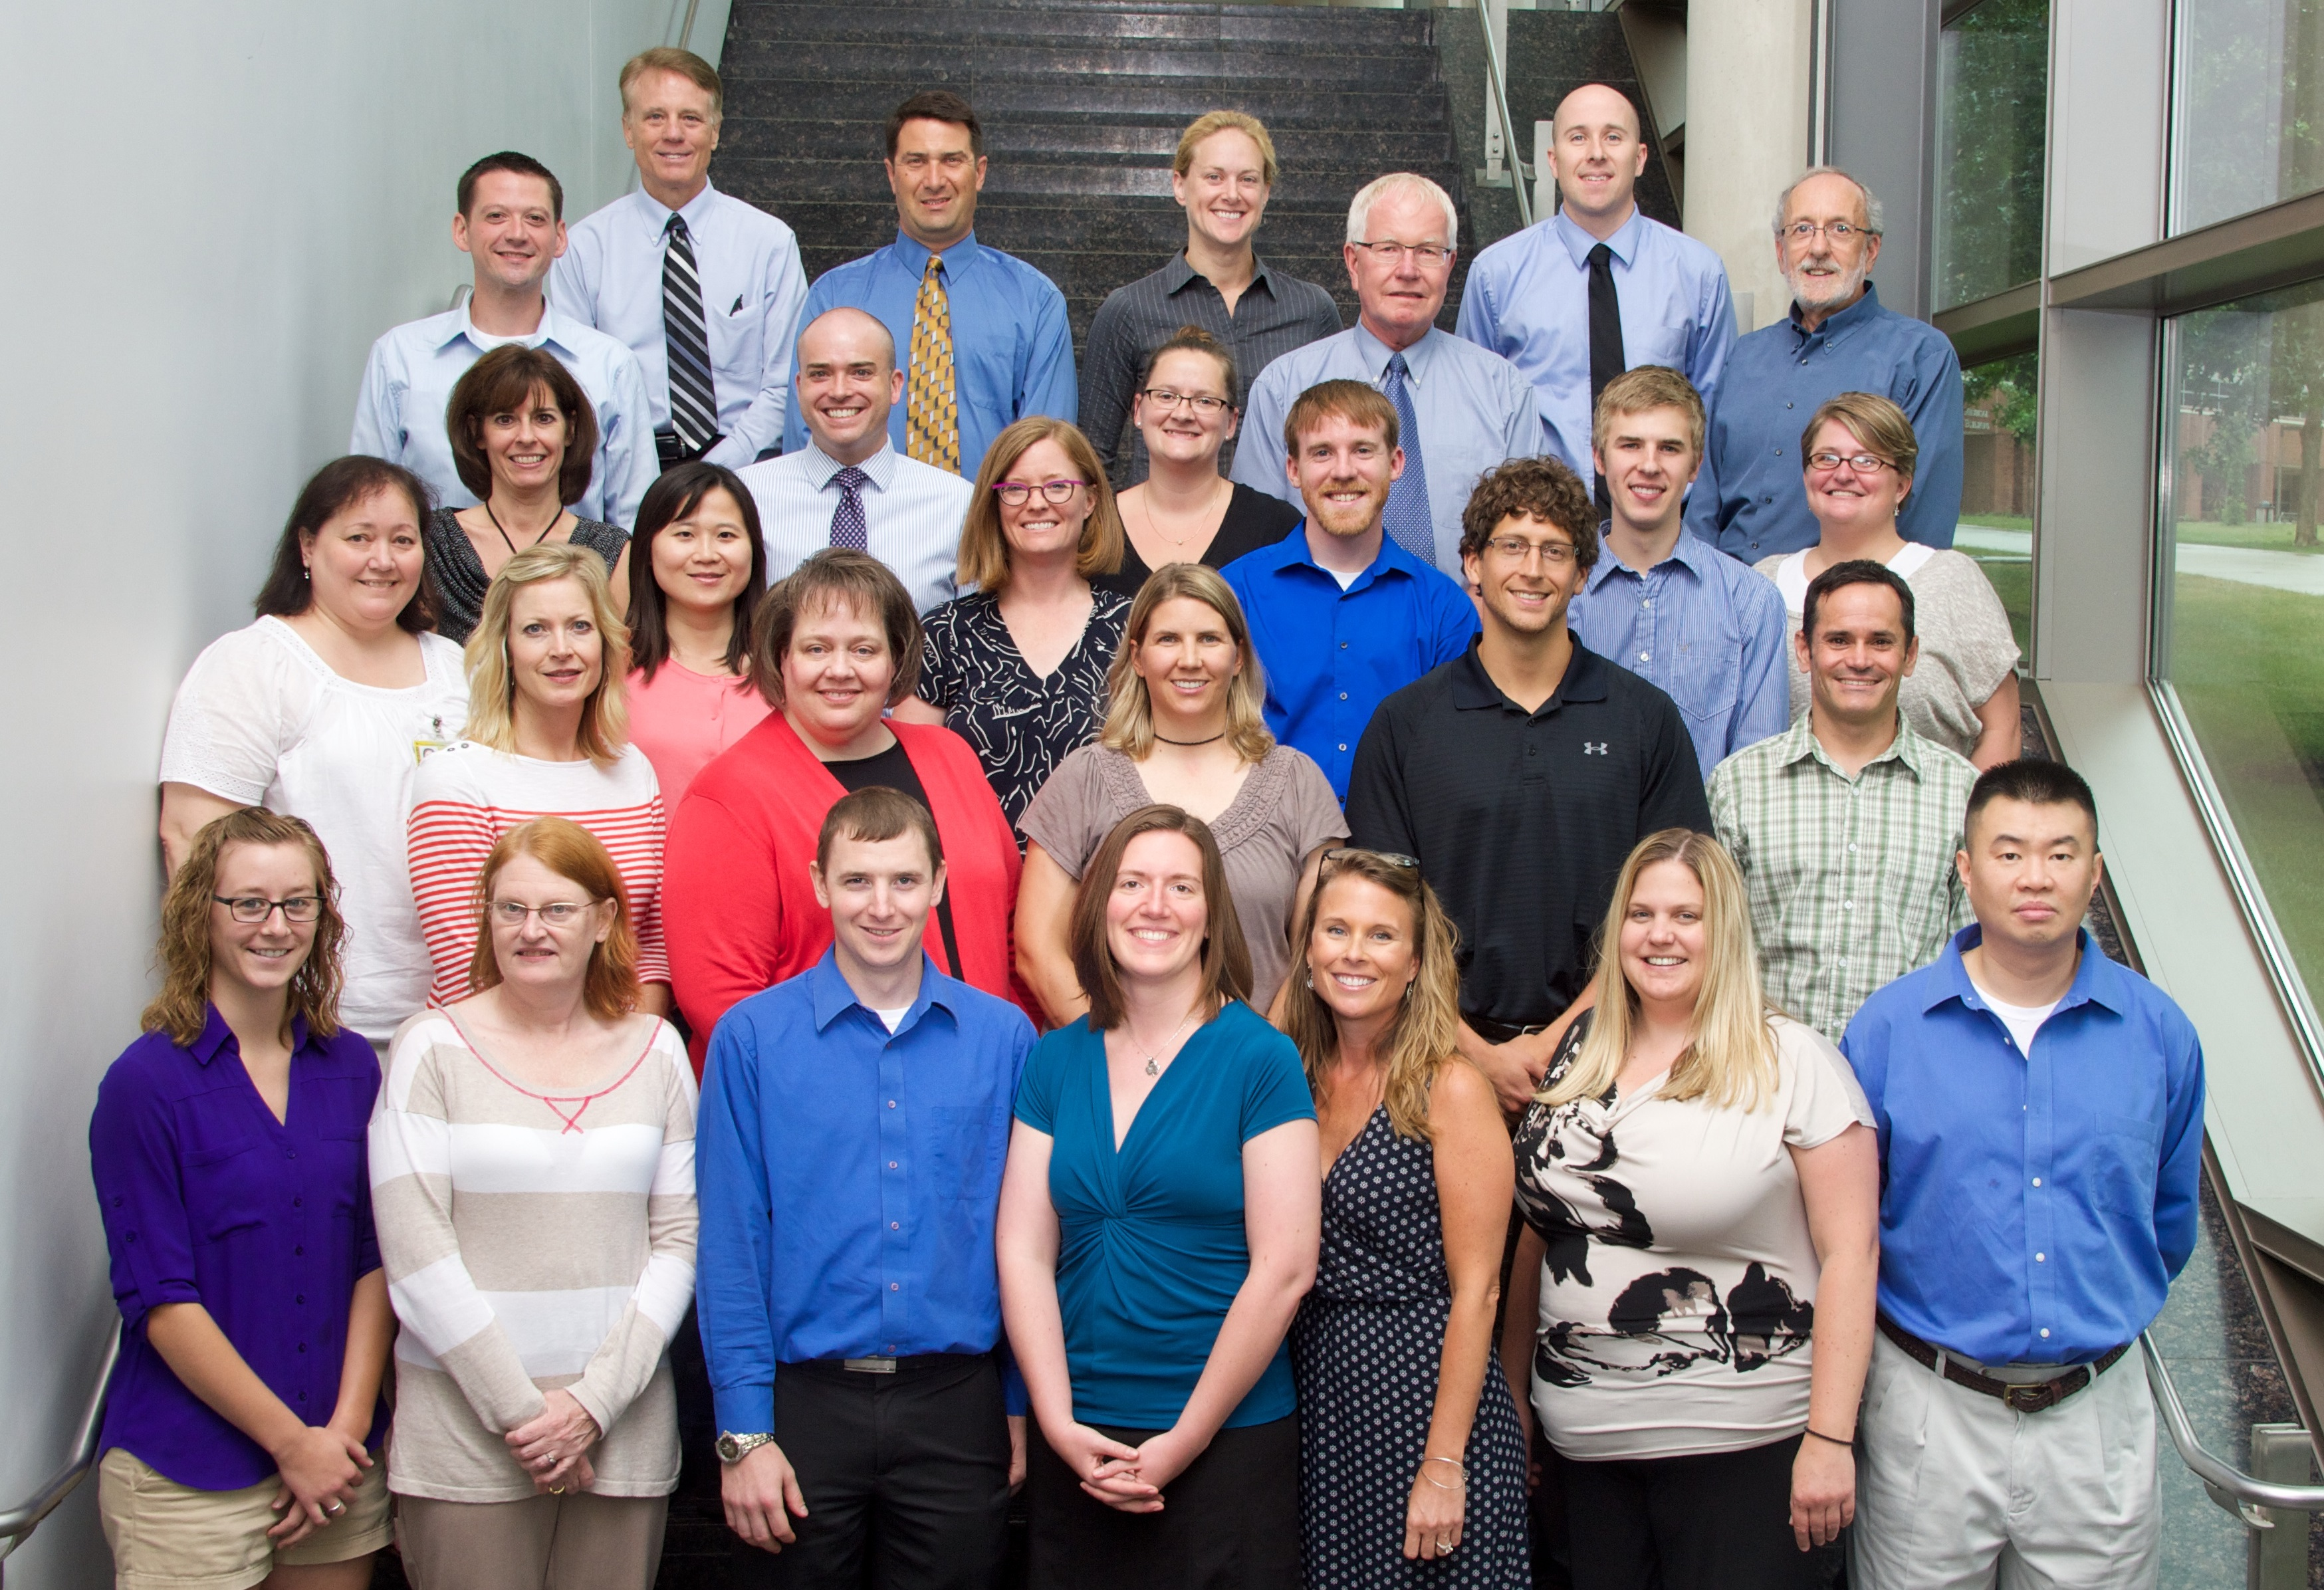 Board of physical therapy - Ma Program